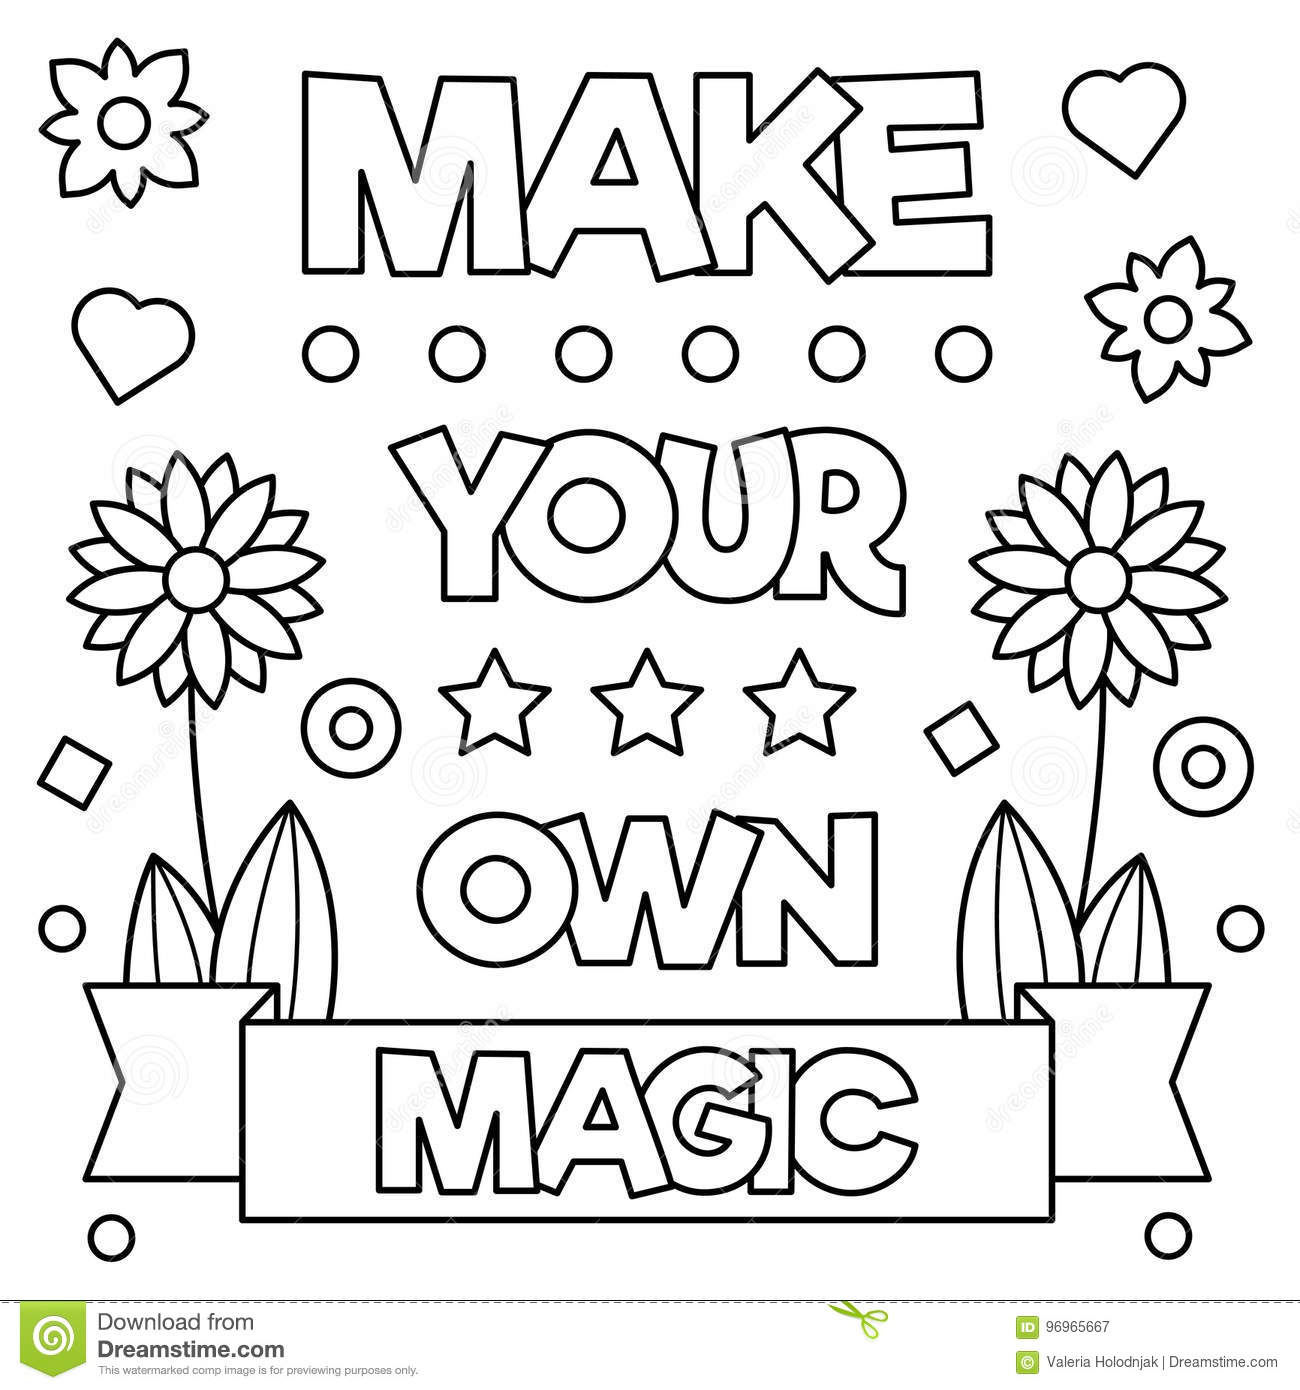 Make Your Own Magic Coloring Page Vector Illustration Stock - Make-your-own-coloring-page